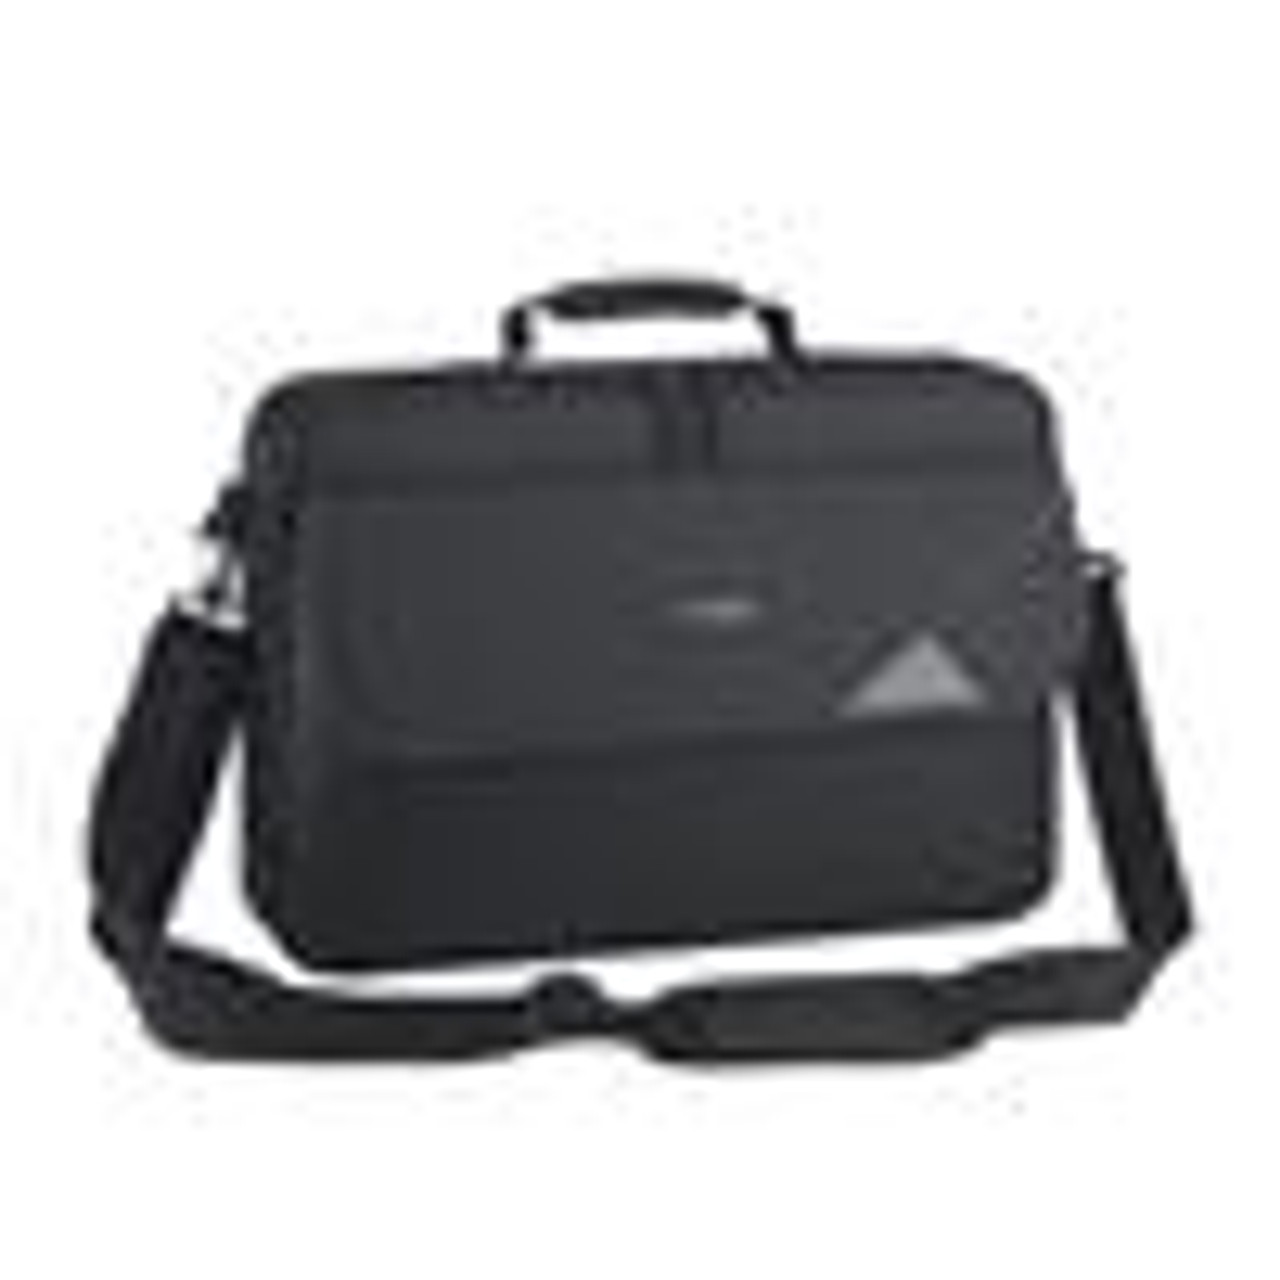 Product image for Targus 15.6in Intellect Bag Clamshell Laptop Case   CX Computer Superstore